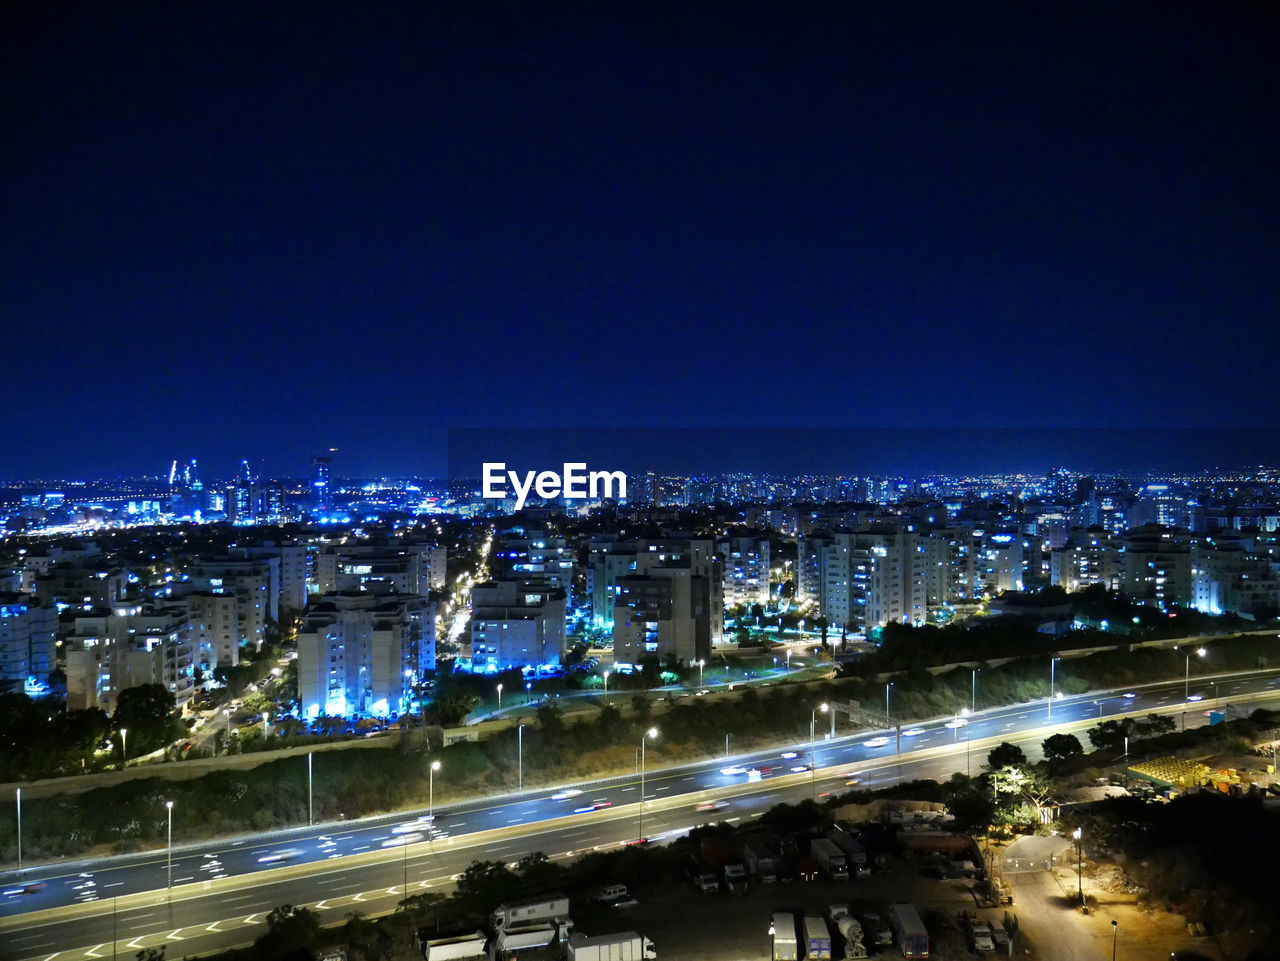 illuminated, city, night, building exterior, architecture, built structure, sky, cityscape, road, copy space, high angle view, street, no people, city life, blue, nature, transportation, motion, building, outdoors, office building exterior, skyscraper